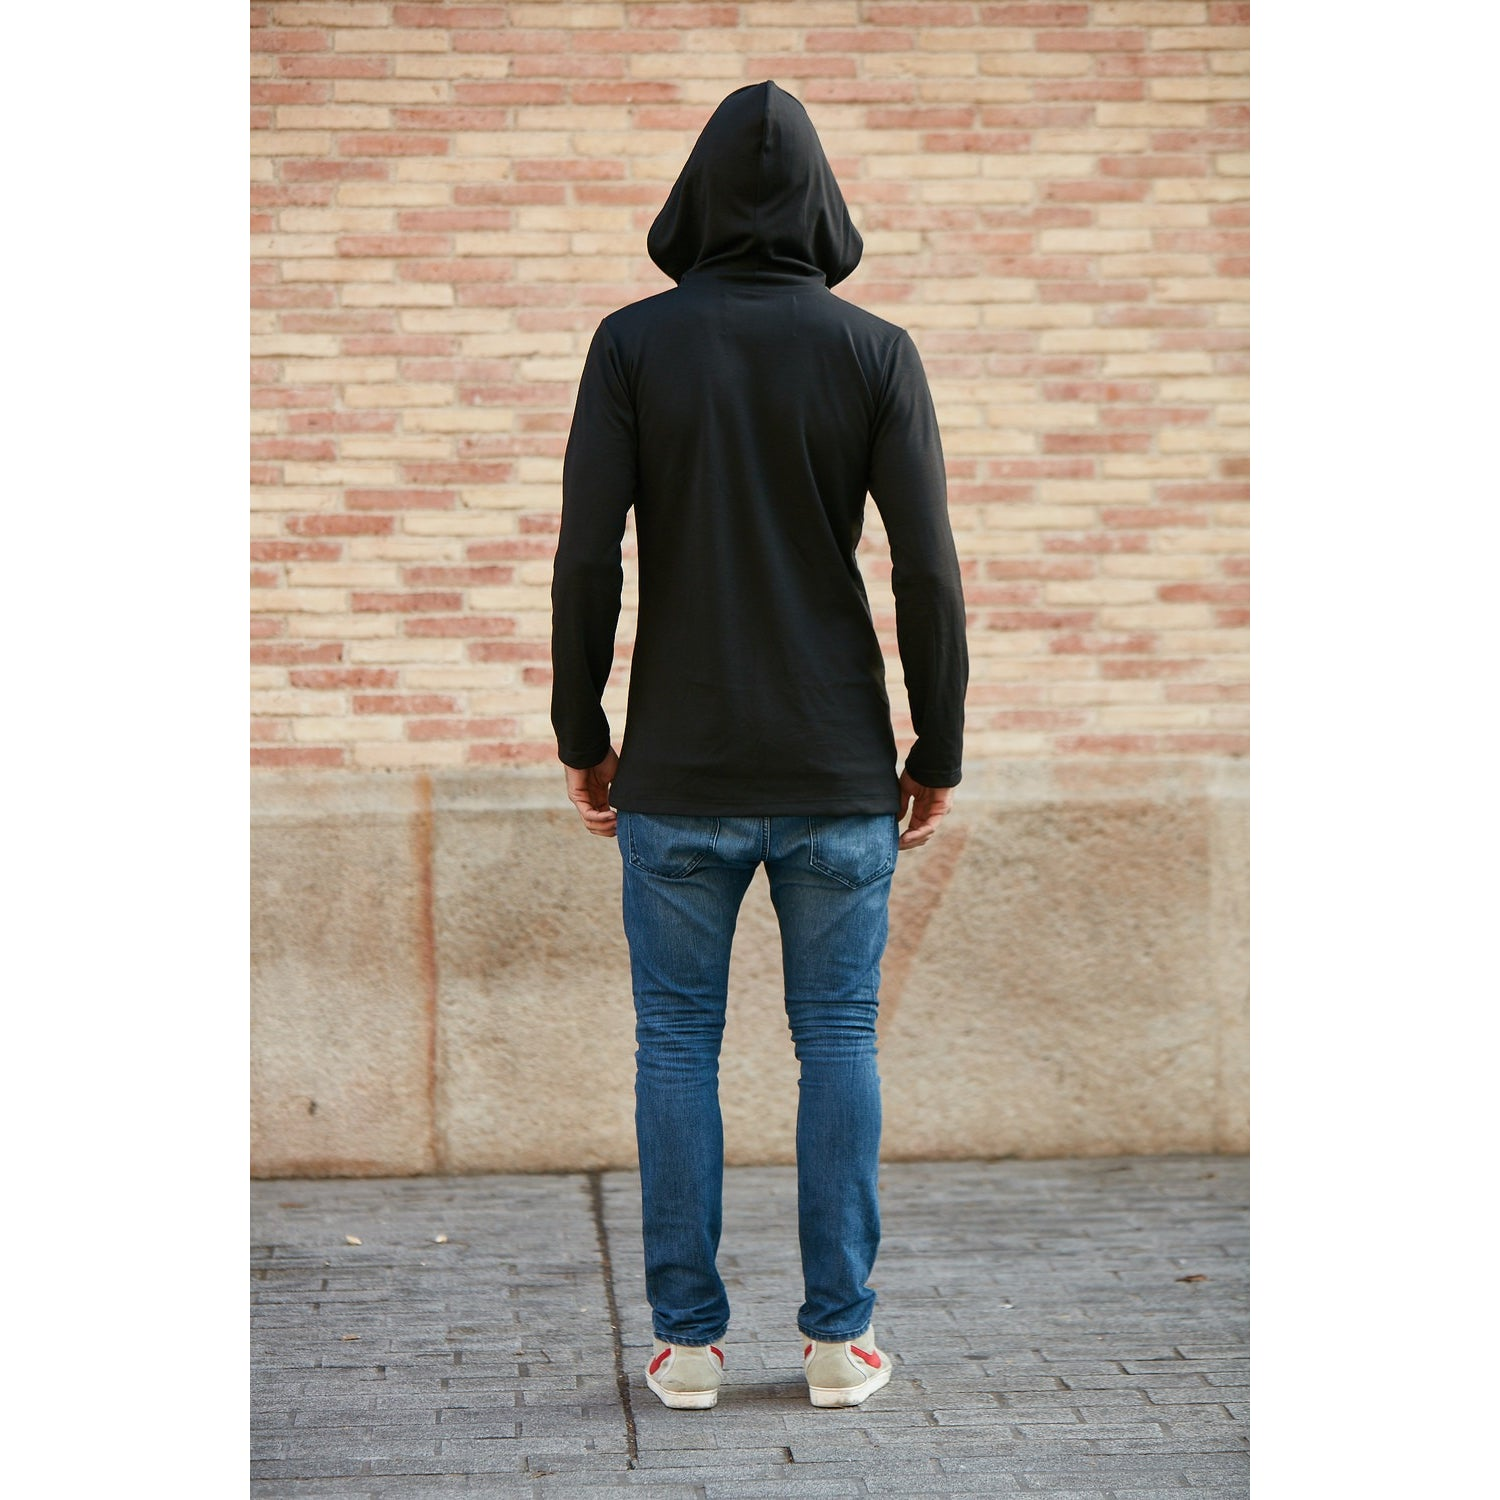 MENS VELVET APPLIQUE SIGNATURE HOODED SWEATSHIRT - W/ SIDE-ZIP